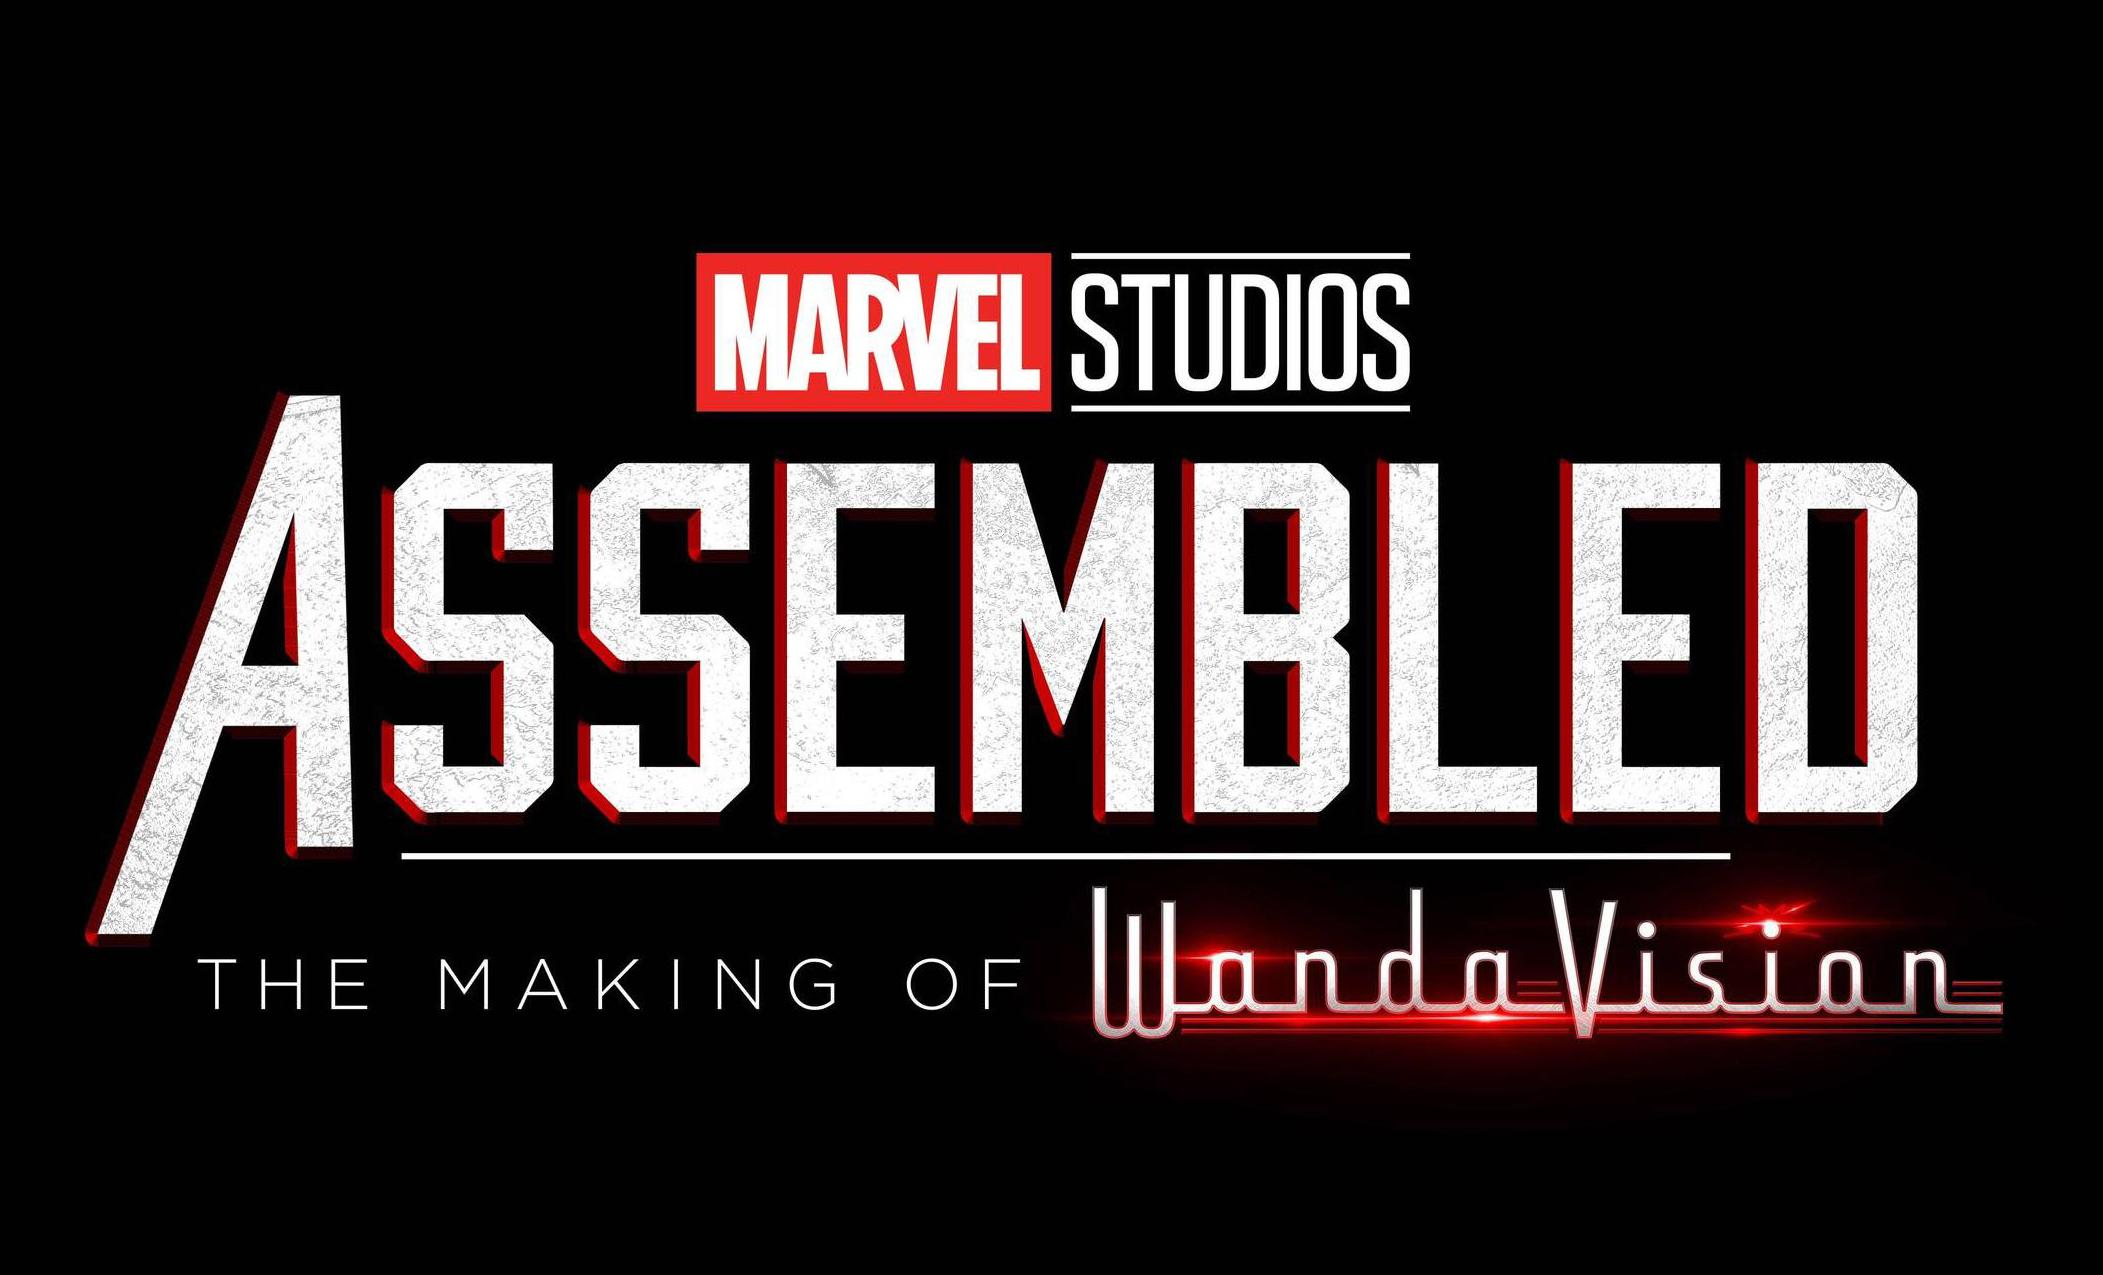 Marvel Studios' behind-the-scenes docuseries starts with 'WandaVision' on March 12th - Engadget